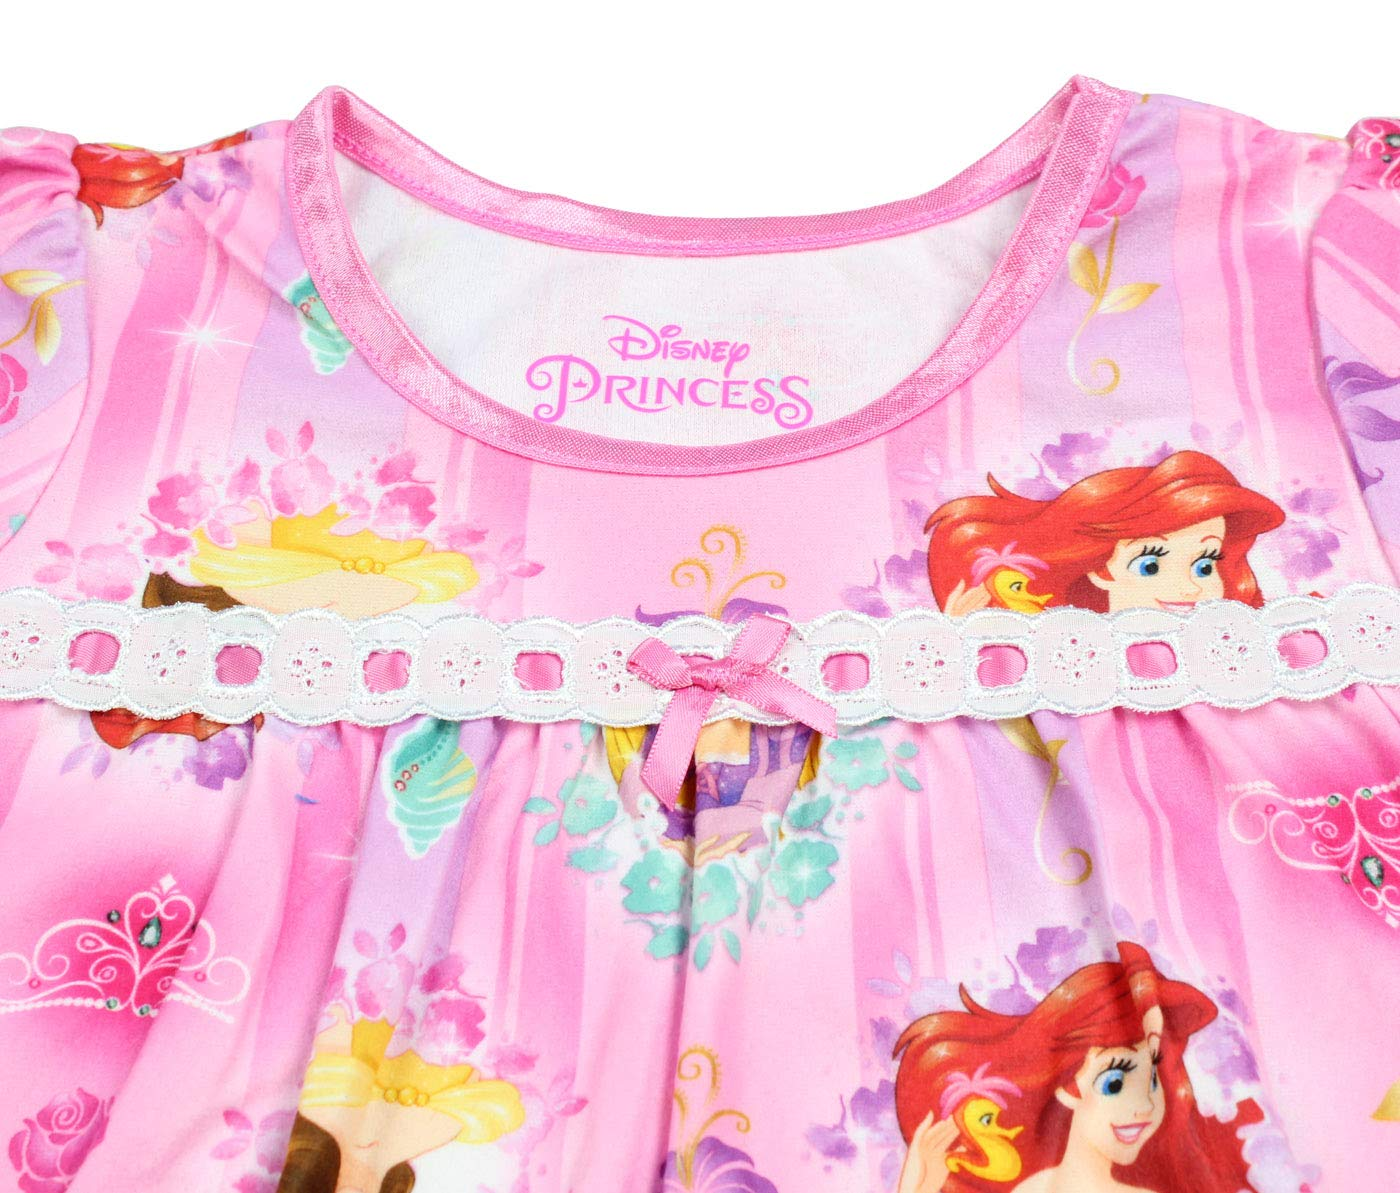 Disney Princess Toddler Girls Long Sleeve Flannel Granny Gown Nightgown Pajamas (3T, Pink) by Disney (Image #4)